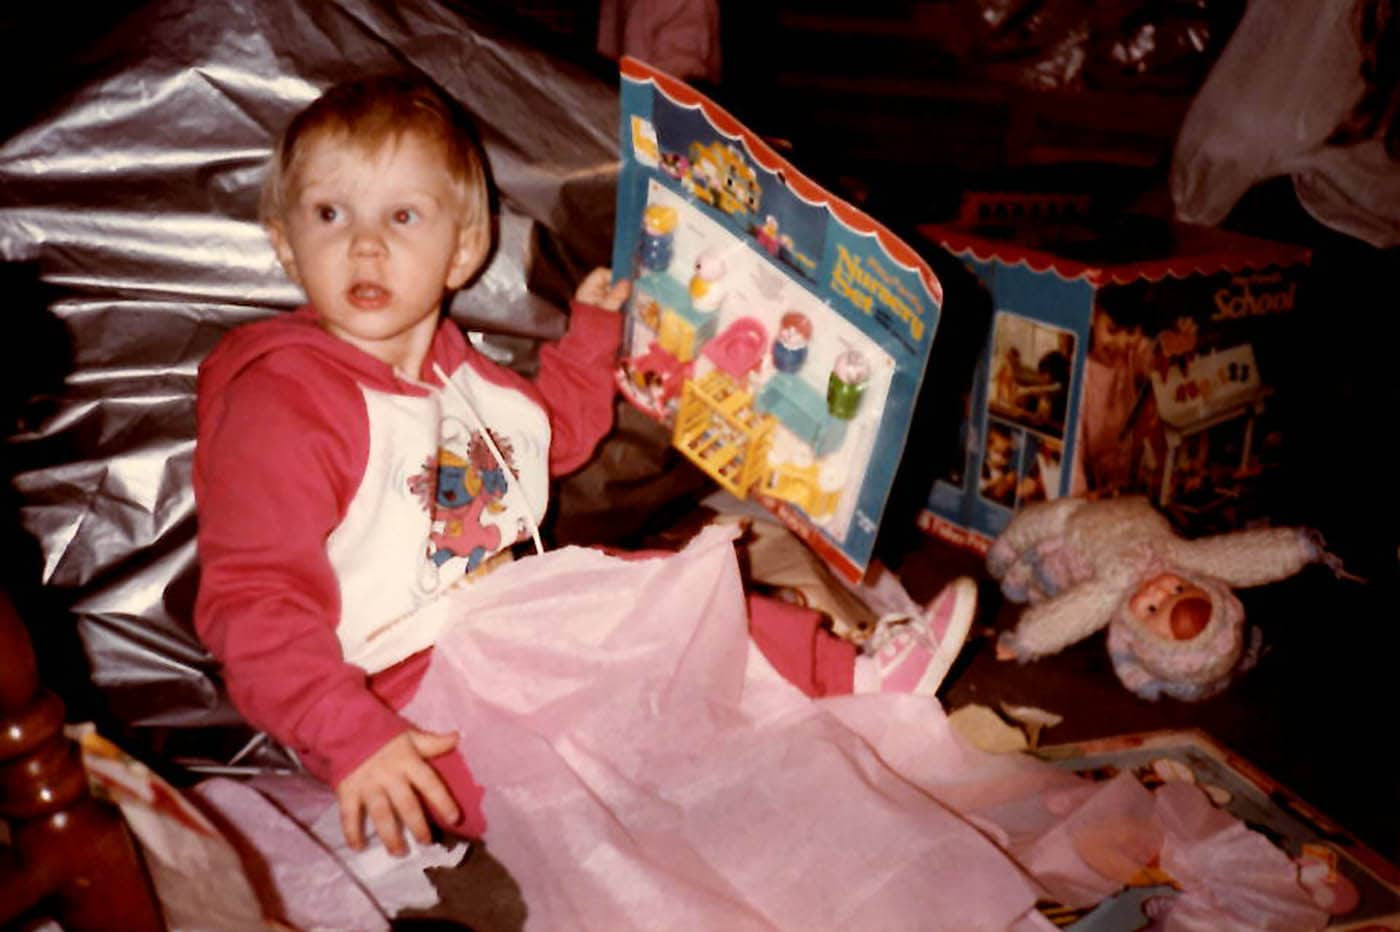 Opening Christmas presents as a kid in the 80s.